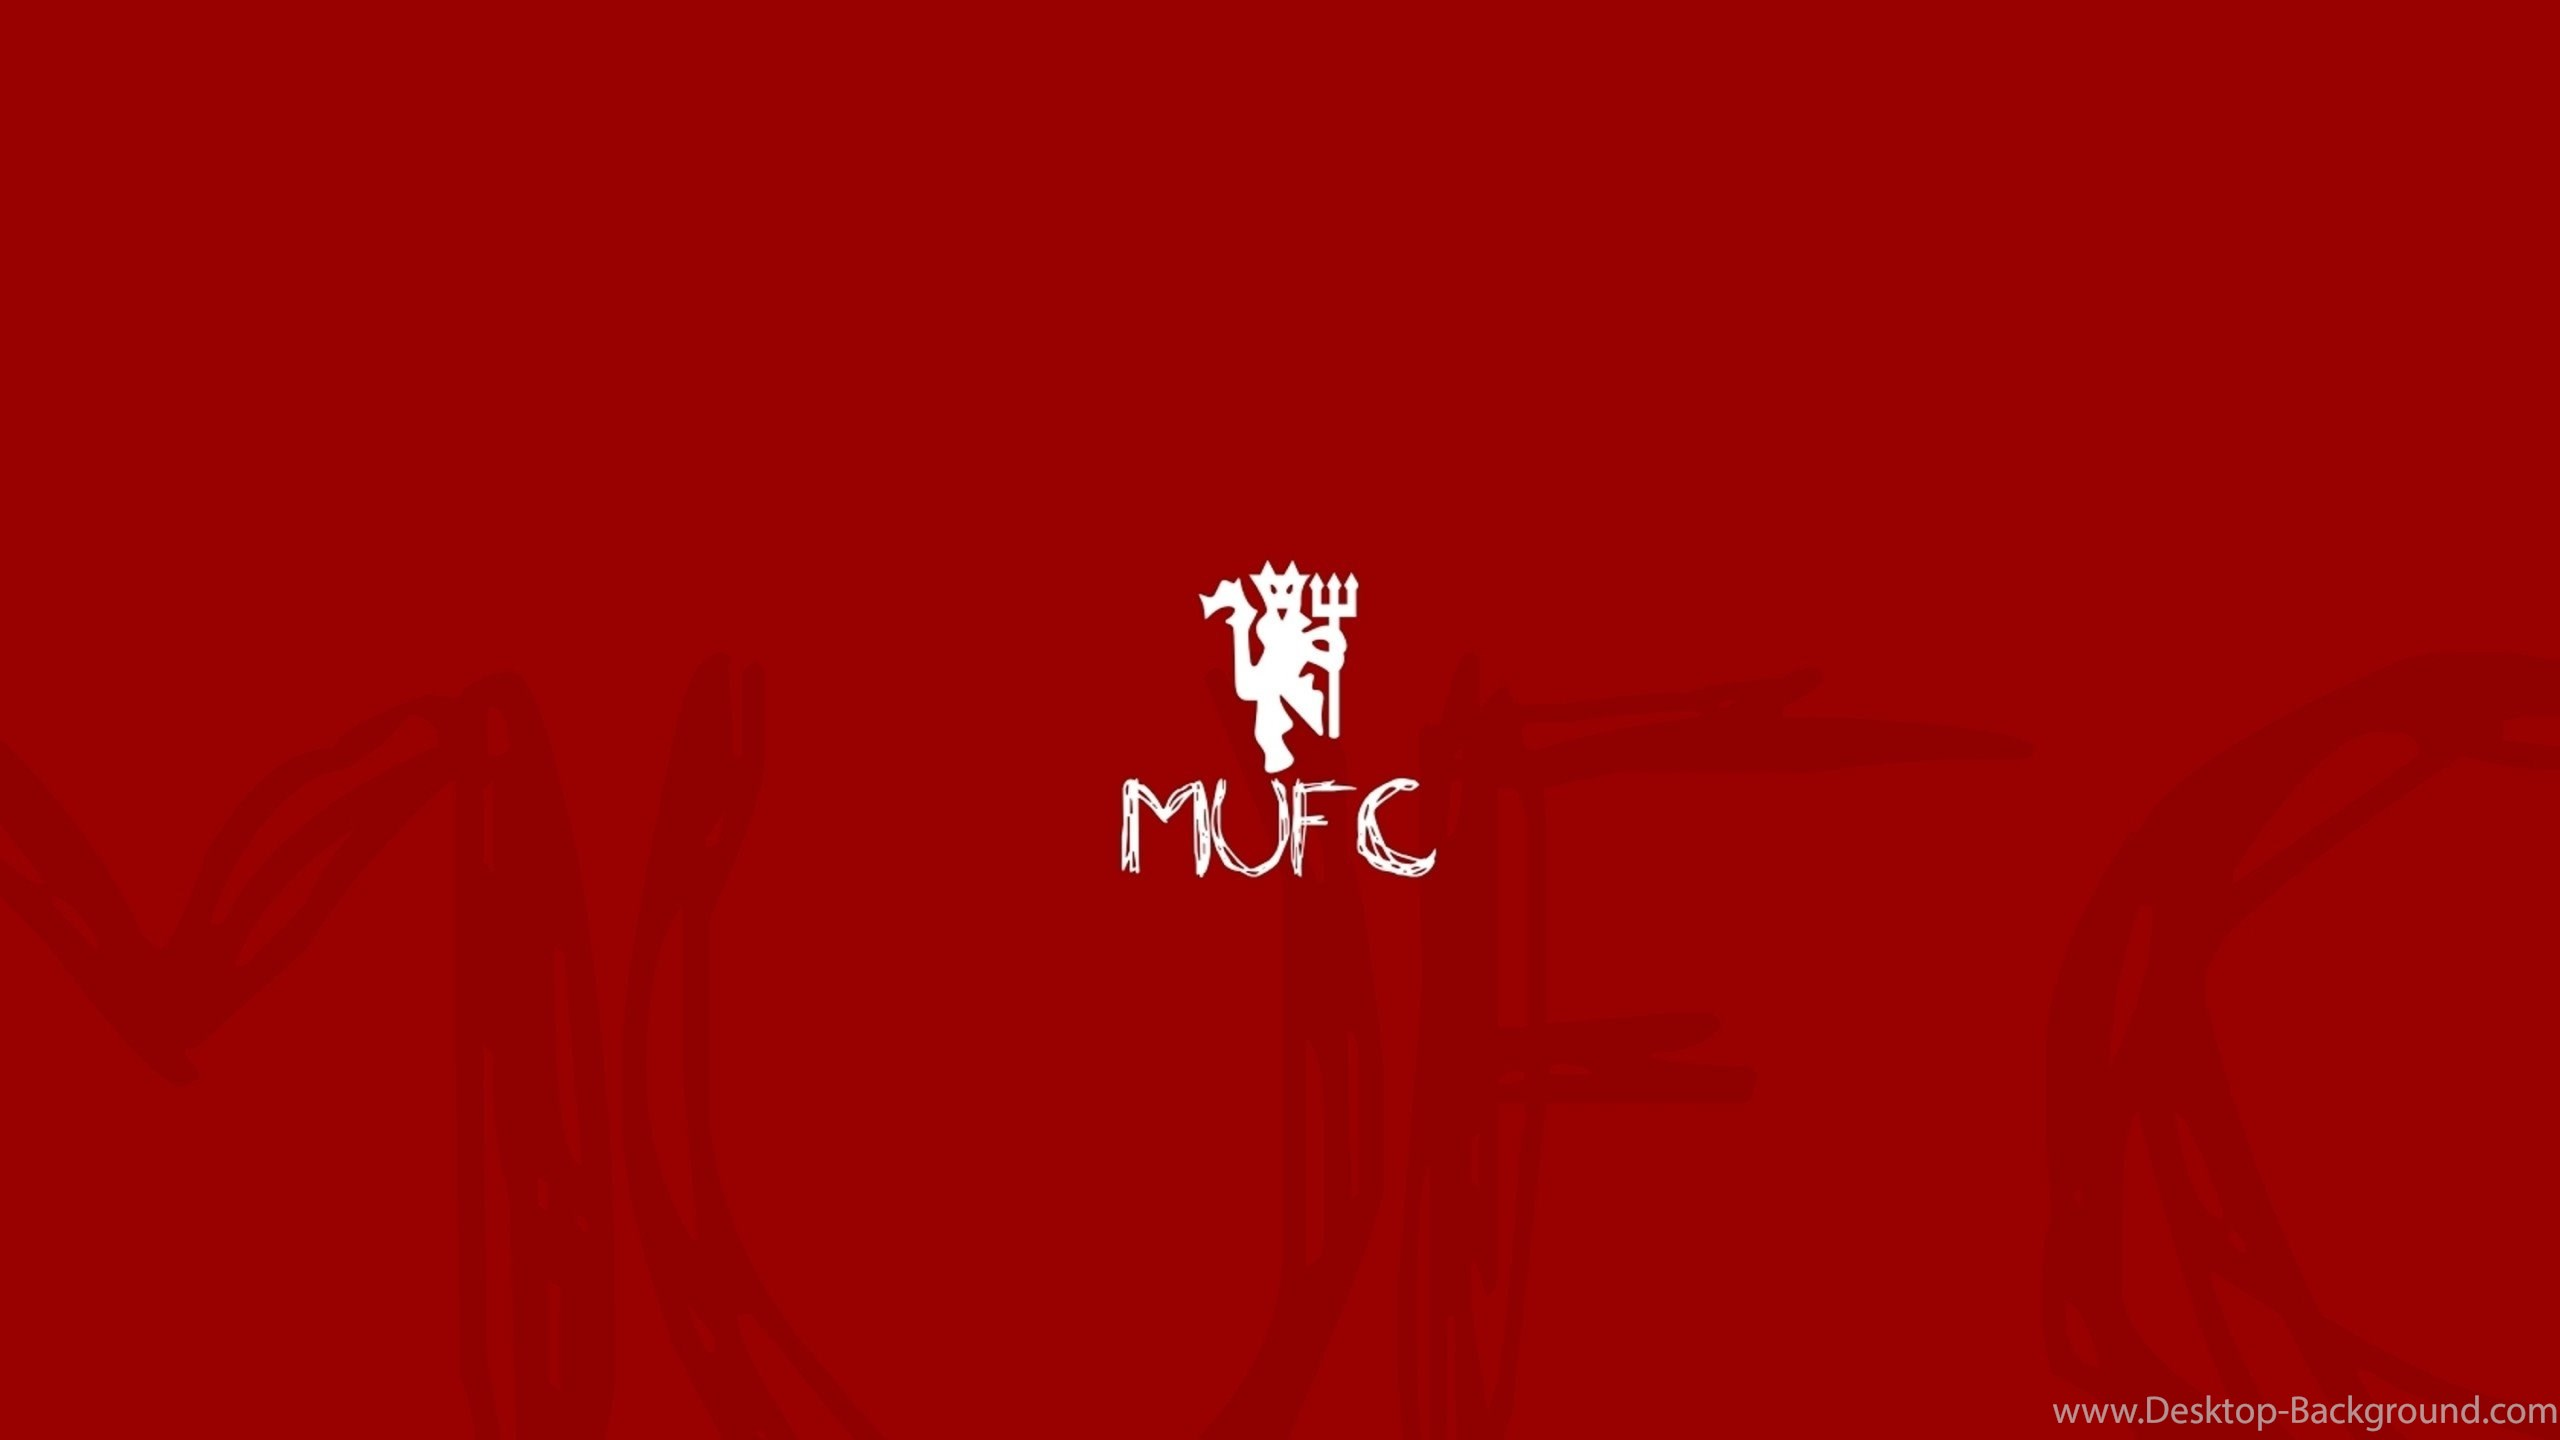 Man Utd Hd Logo Wallapapers For Desktop 2019 Collection